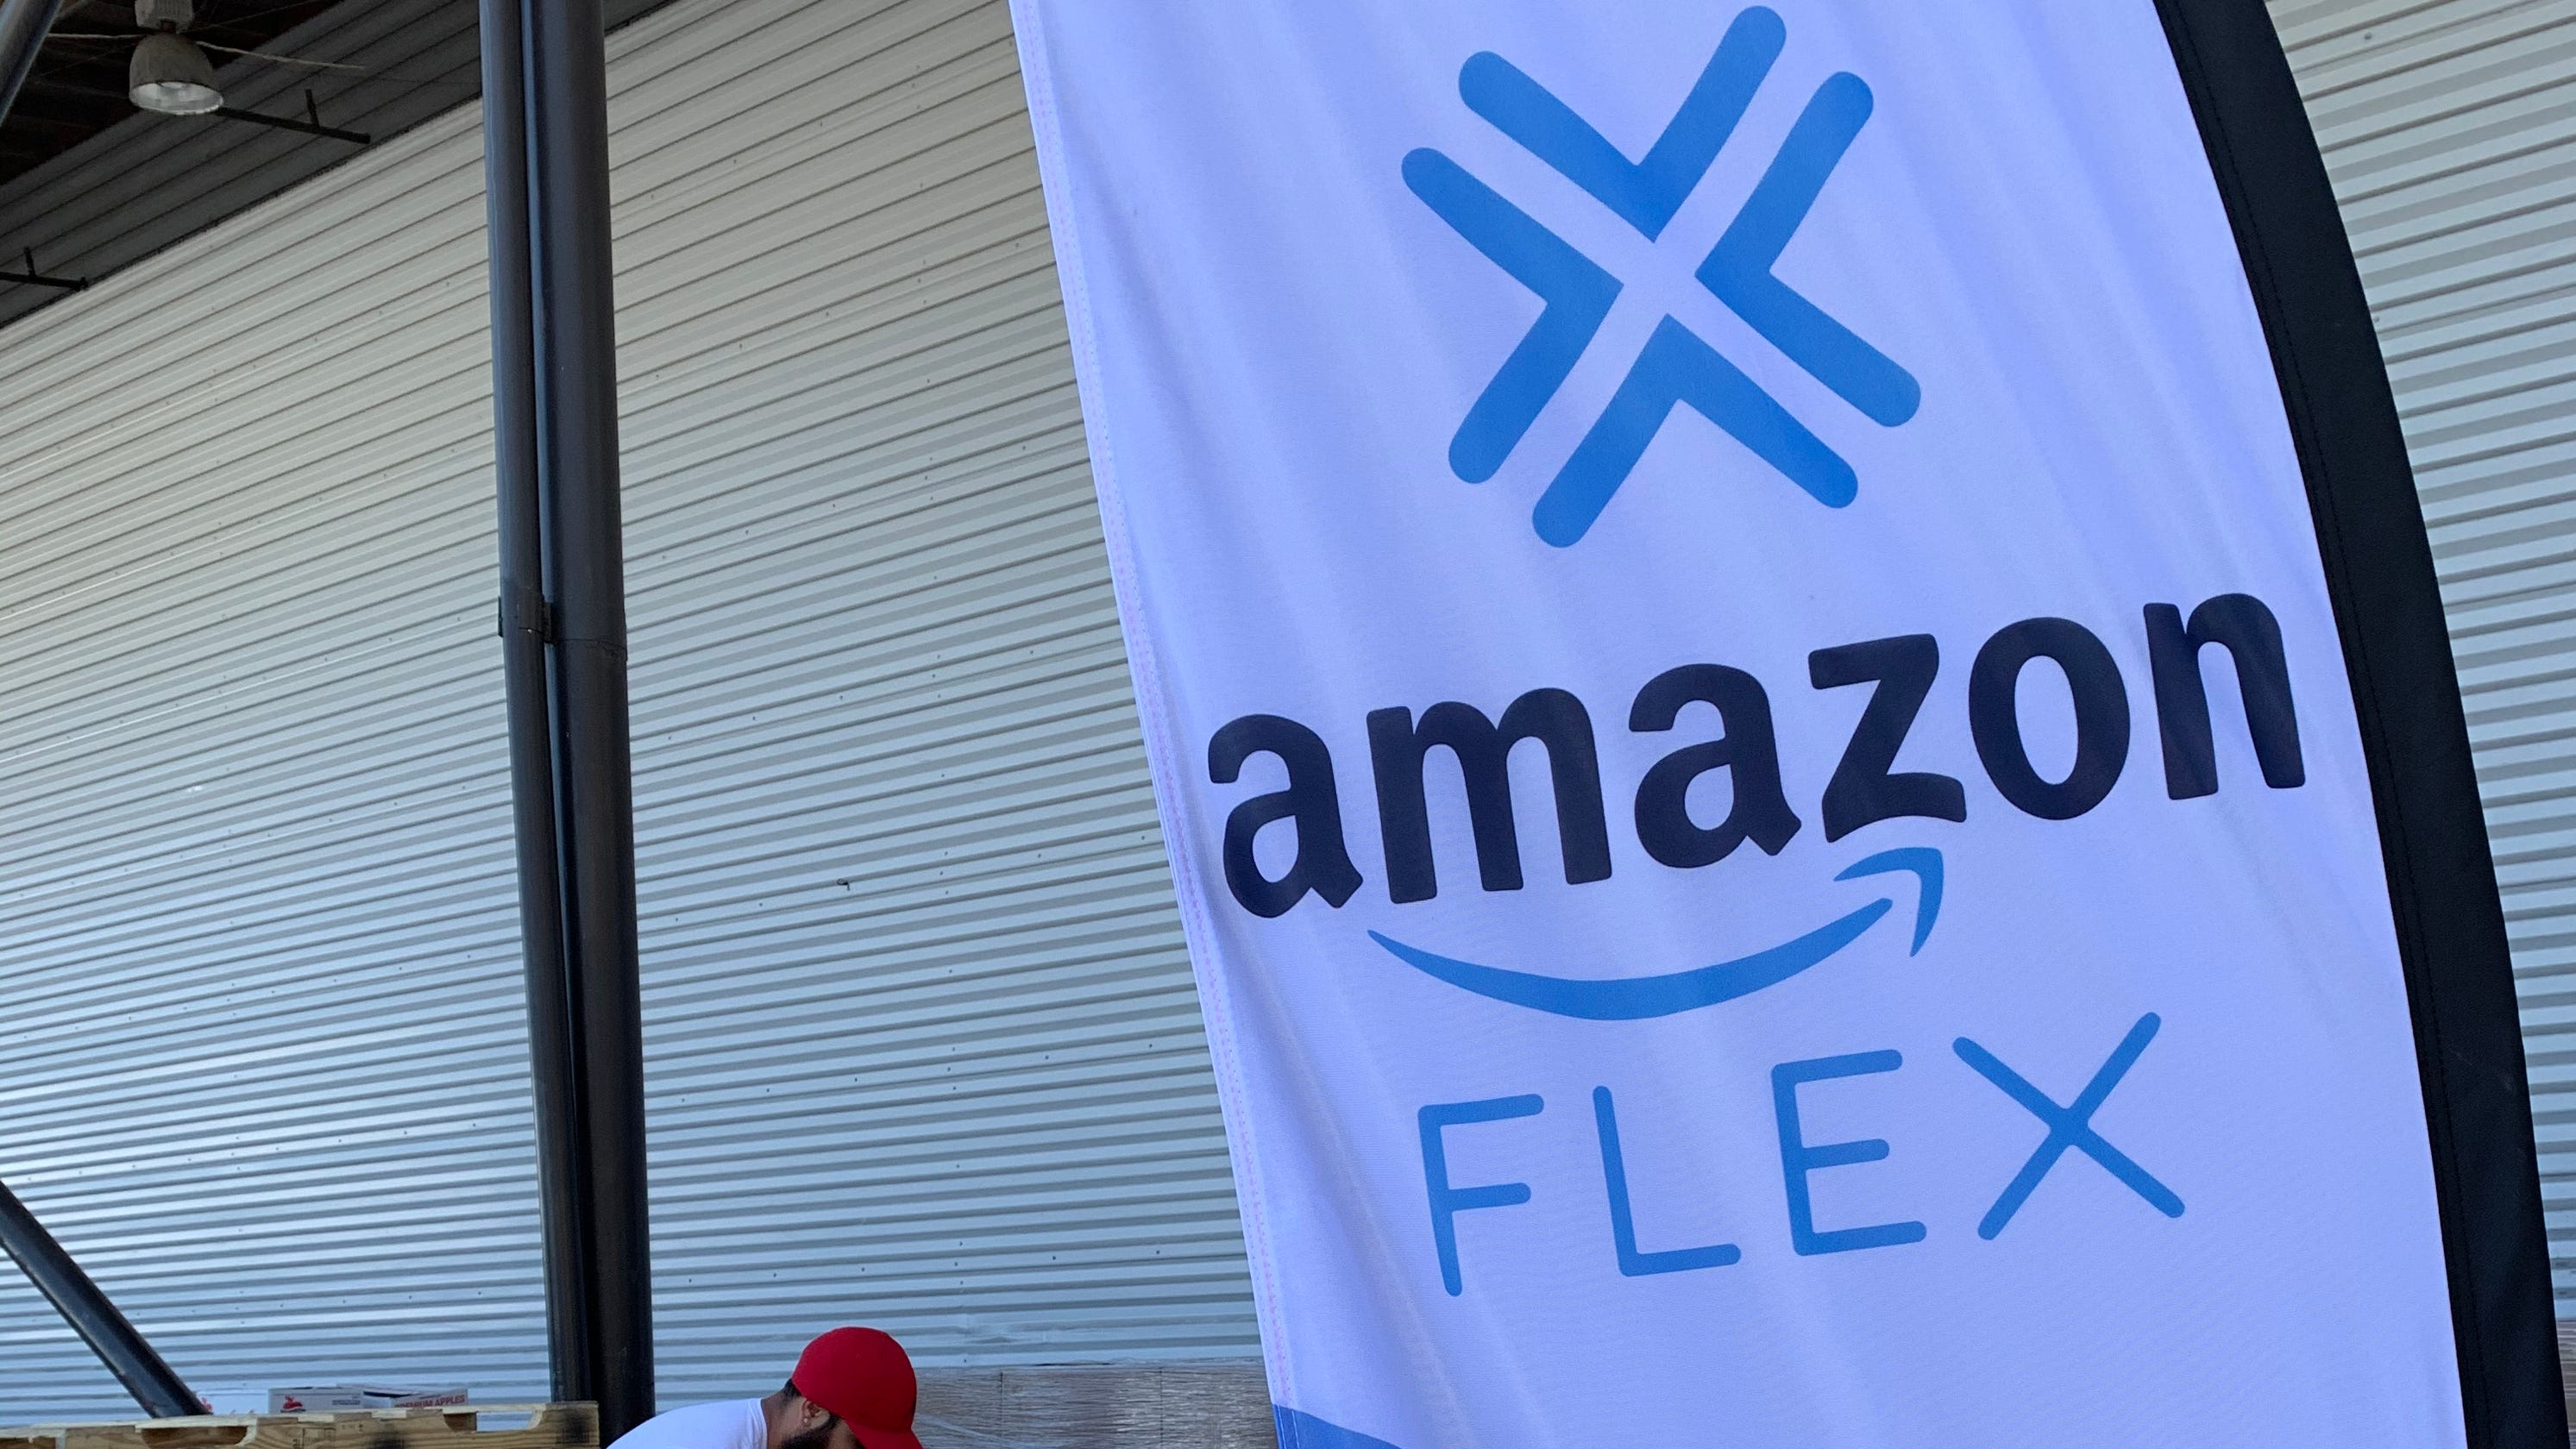 Amazon doing free deliveries for food banks during Coronavirus emergency